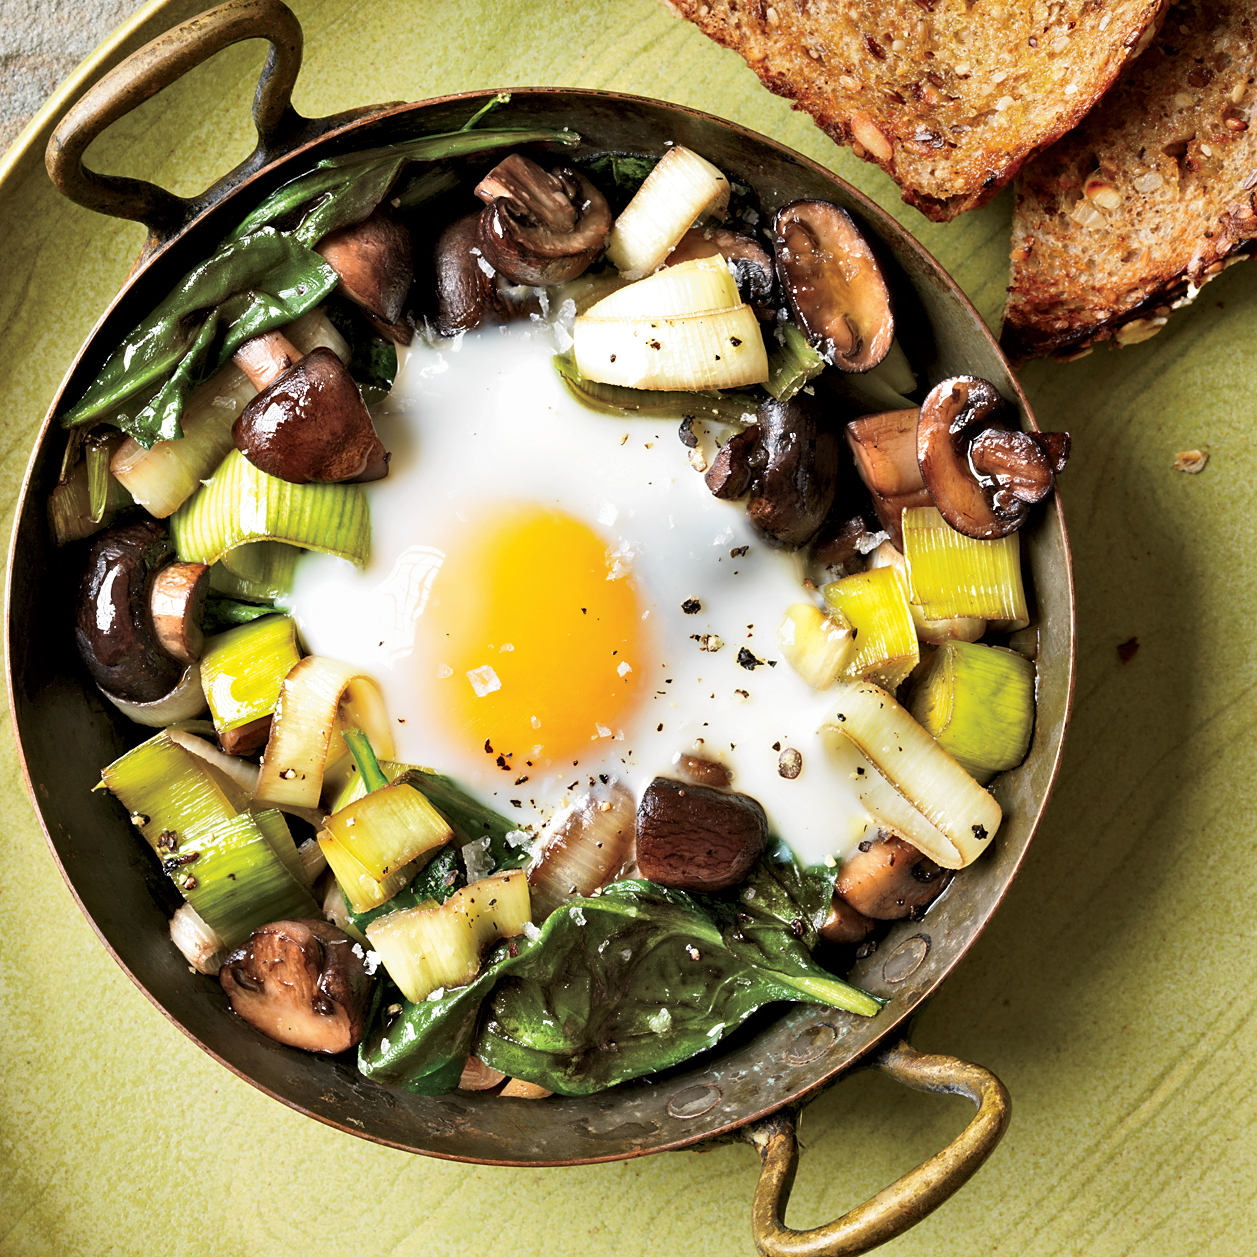 Quick, Healthy Breakfasts like Eggs Baked Over Sautéed Mushrooms and Spinach